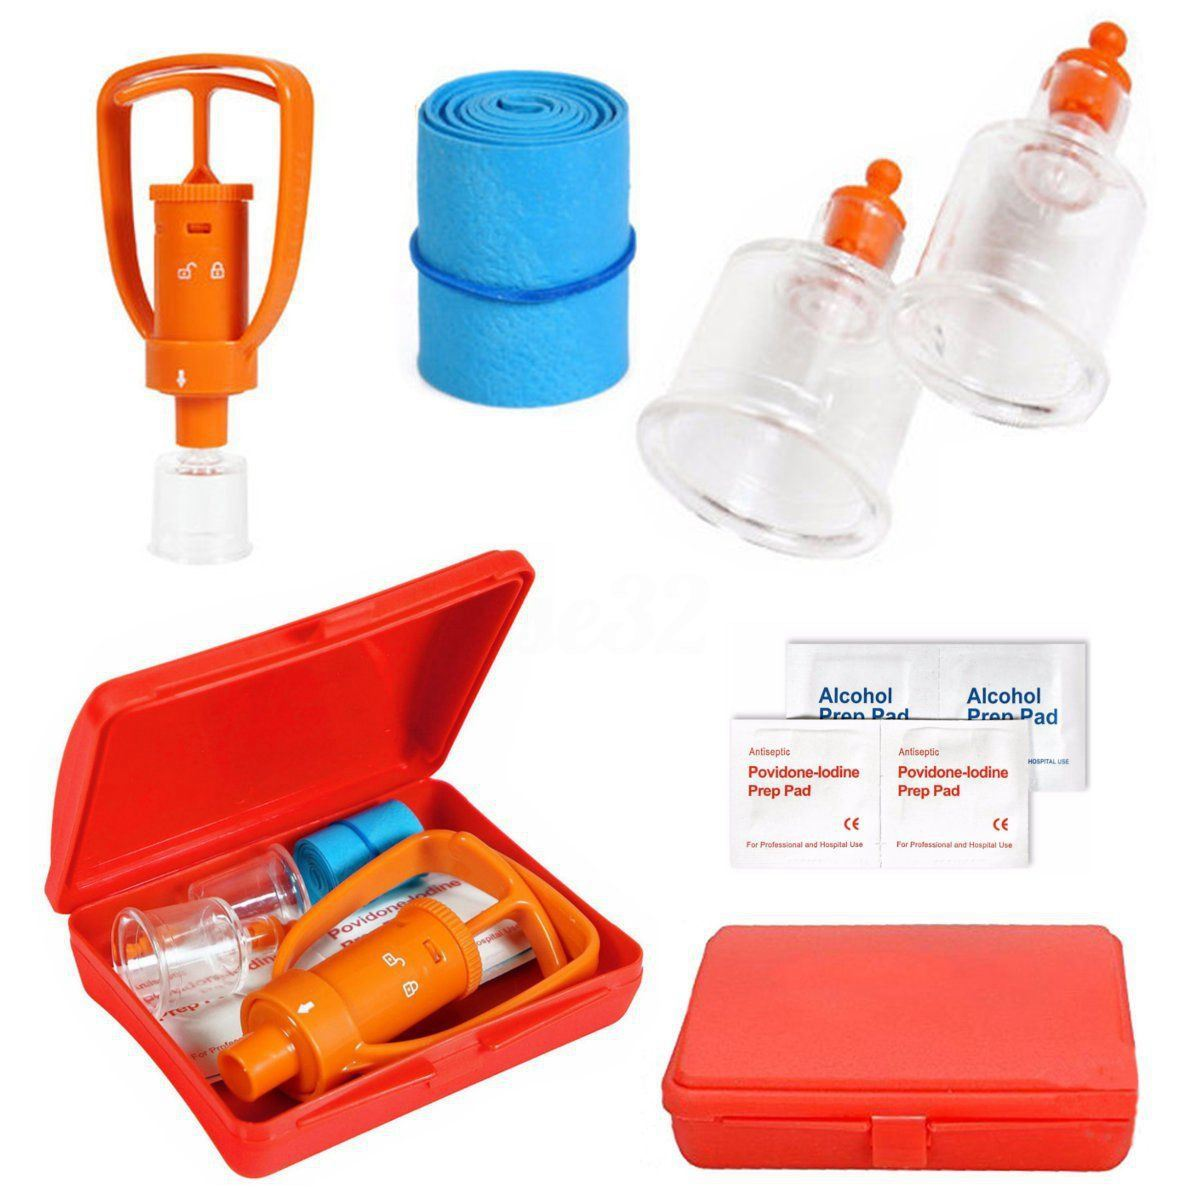 Venom Extractor Pump First Aid Safety Kit Emergency Snake Bite Outdoor Camping Survival Tool SOS